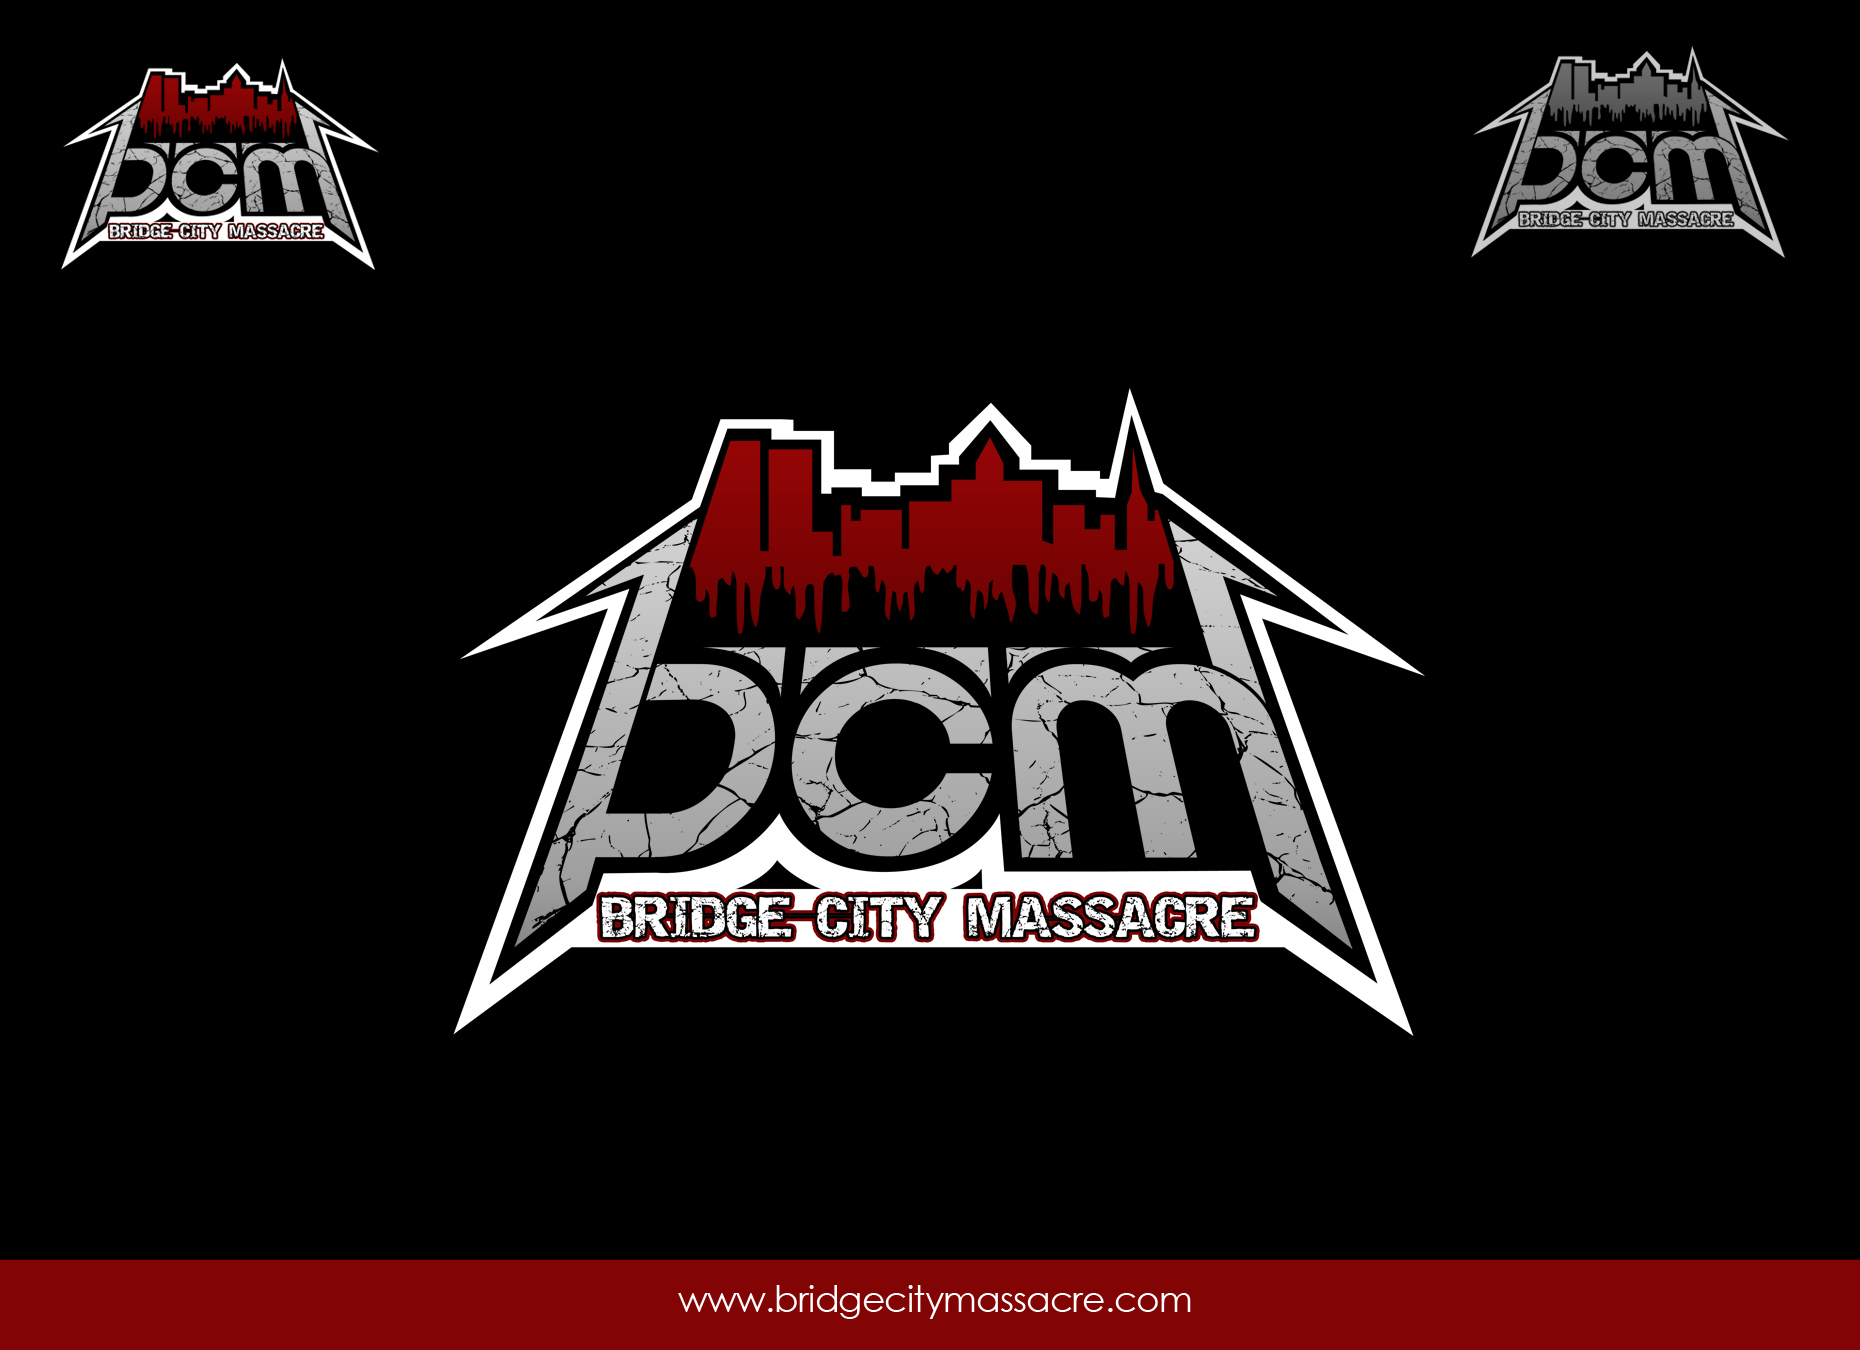 Logo Design by omARTist - Entry No. 54 in the Logo Design Contest New Logo Design for Bridge City Massacre.